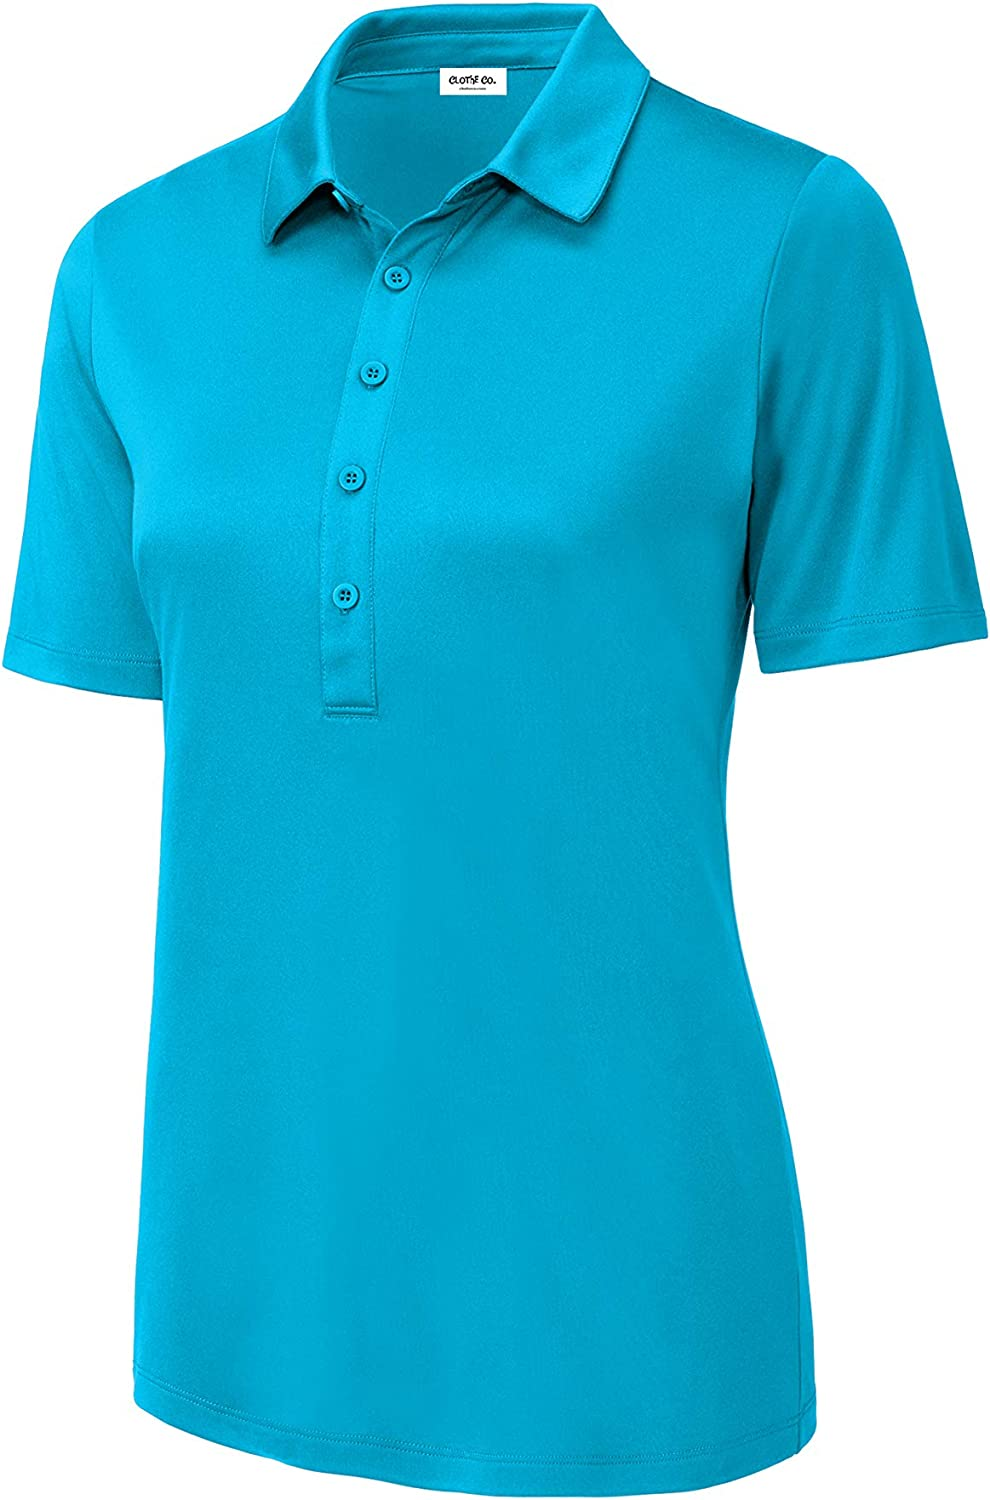 Women's Ladies UV 50 Golf Button Polo Shirt at  Women's Clothing store